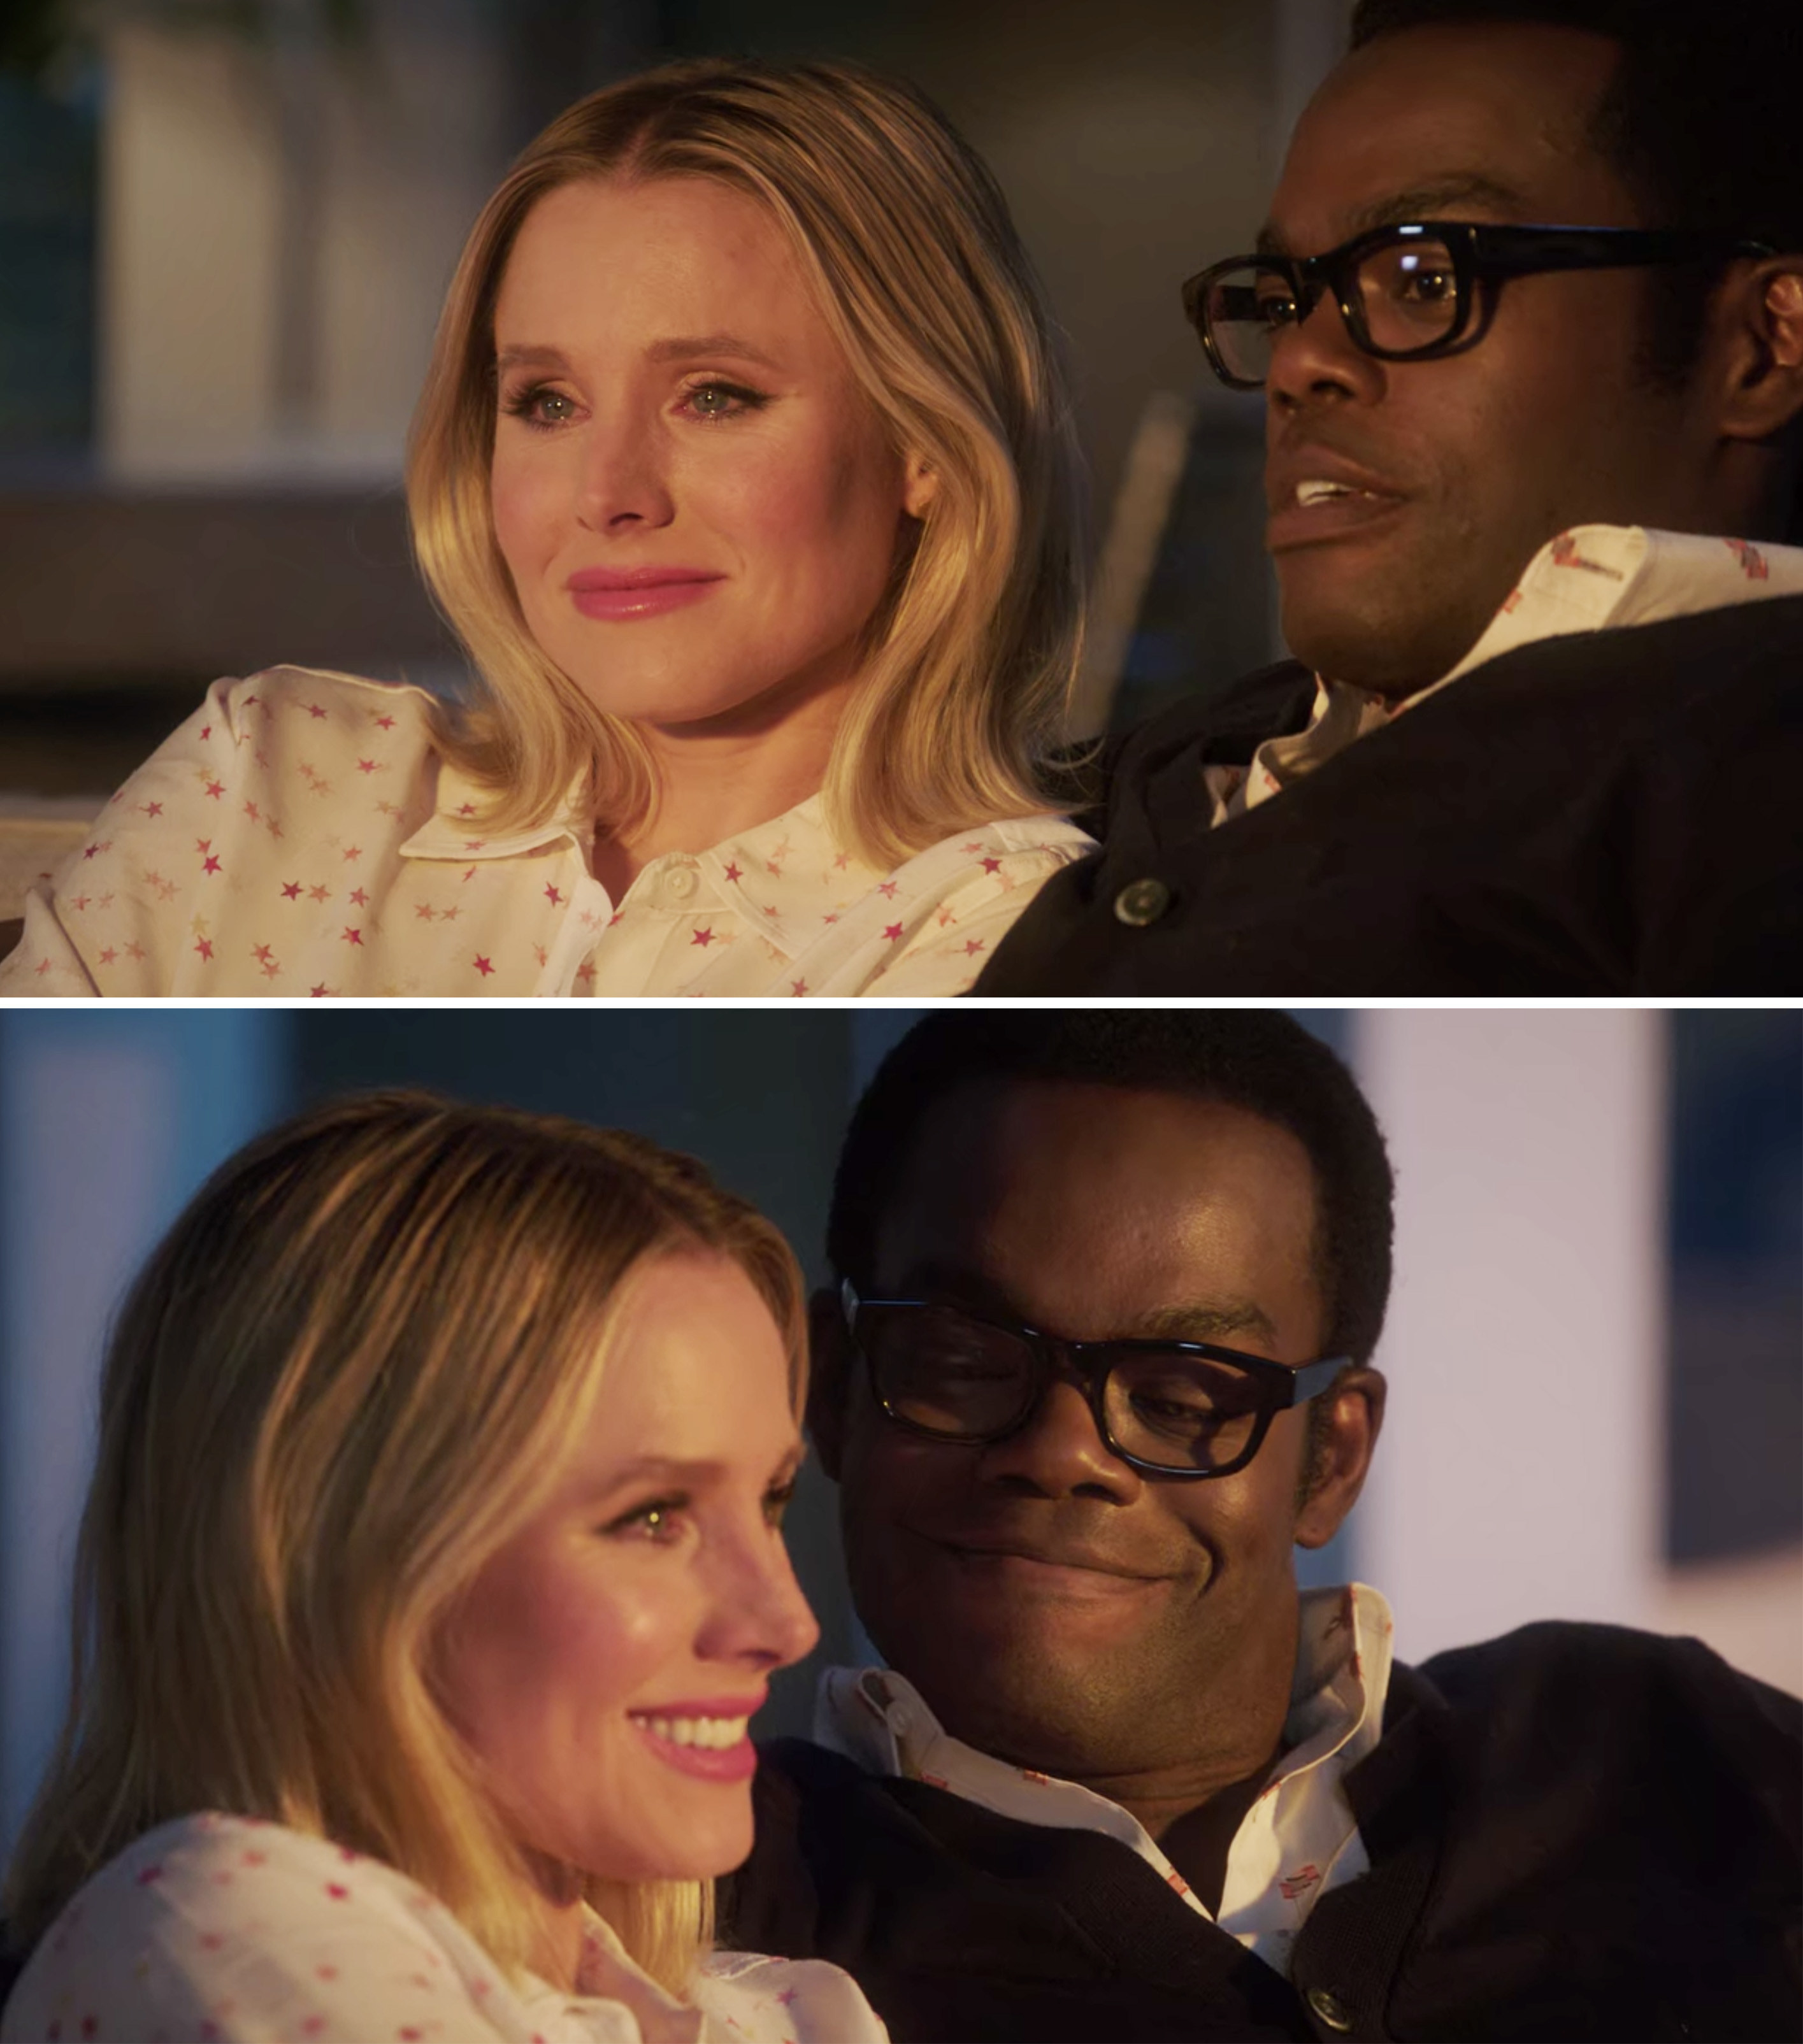 Chidi and Eleanor sitting together and Eleanor crying during the series finale